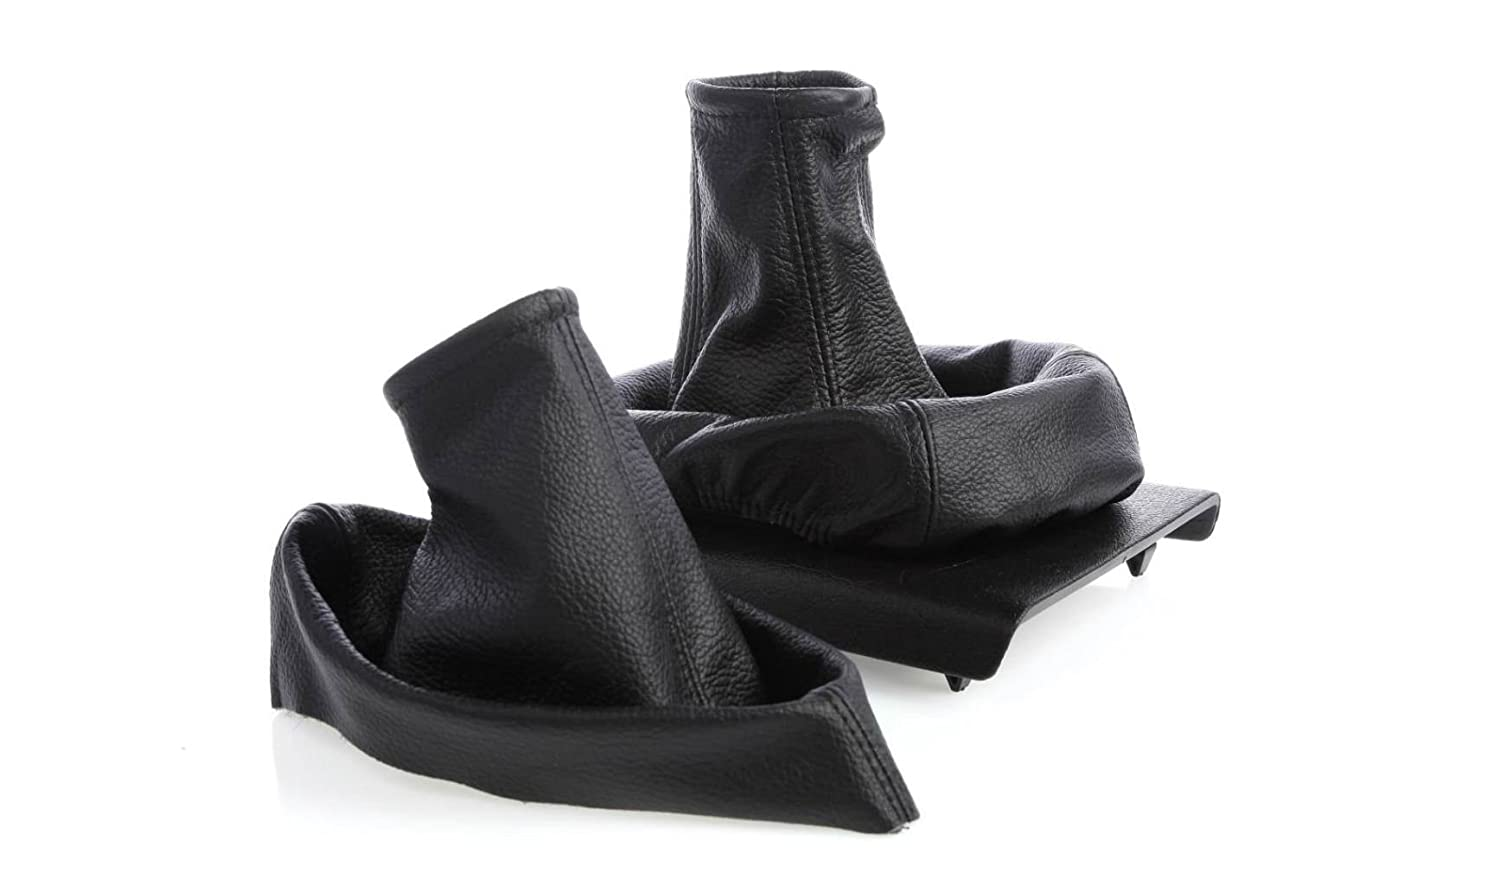 myshopx Gear Stick Cover and Handbrake Cover - Collar, Gaiter - Real Leather, Black - SH45